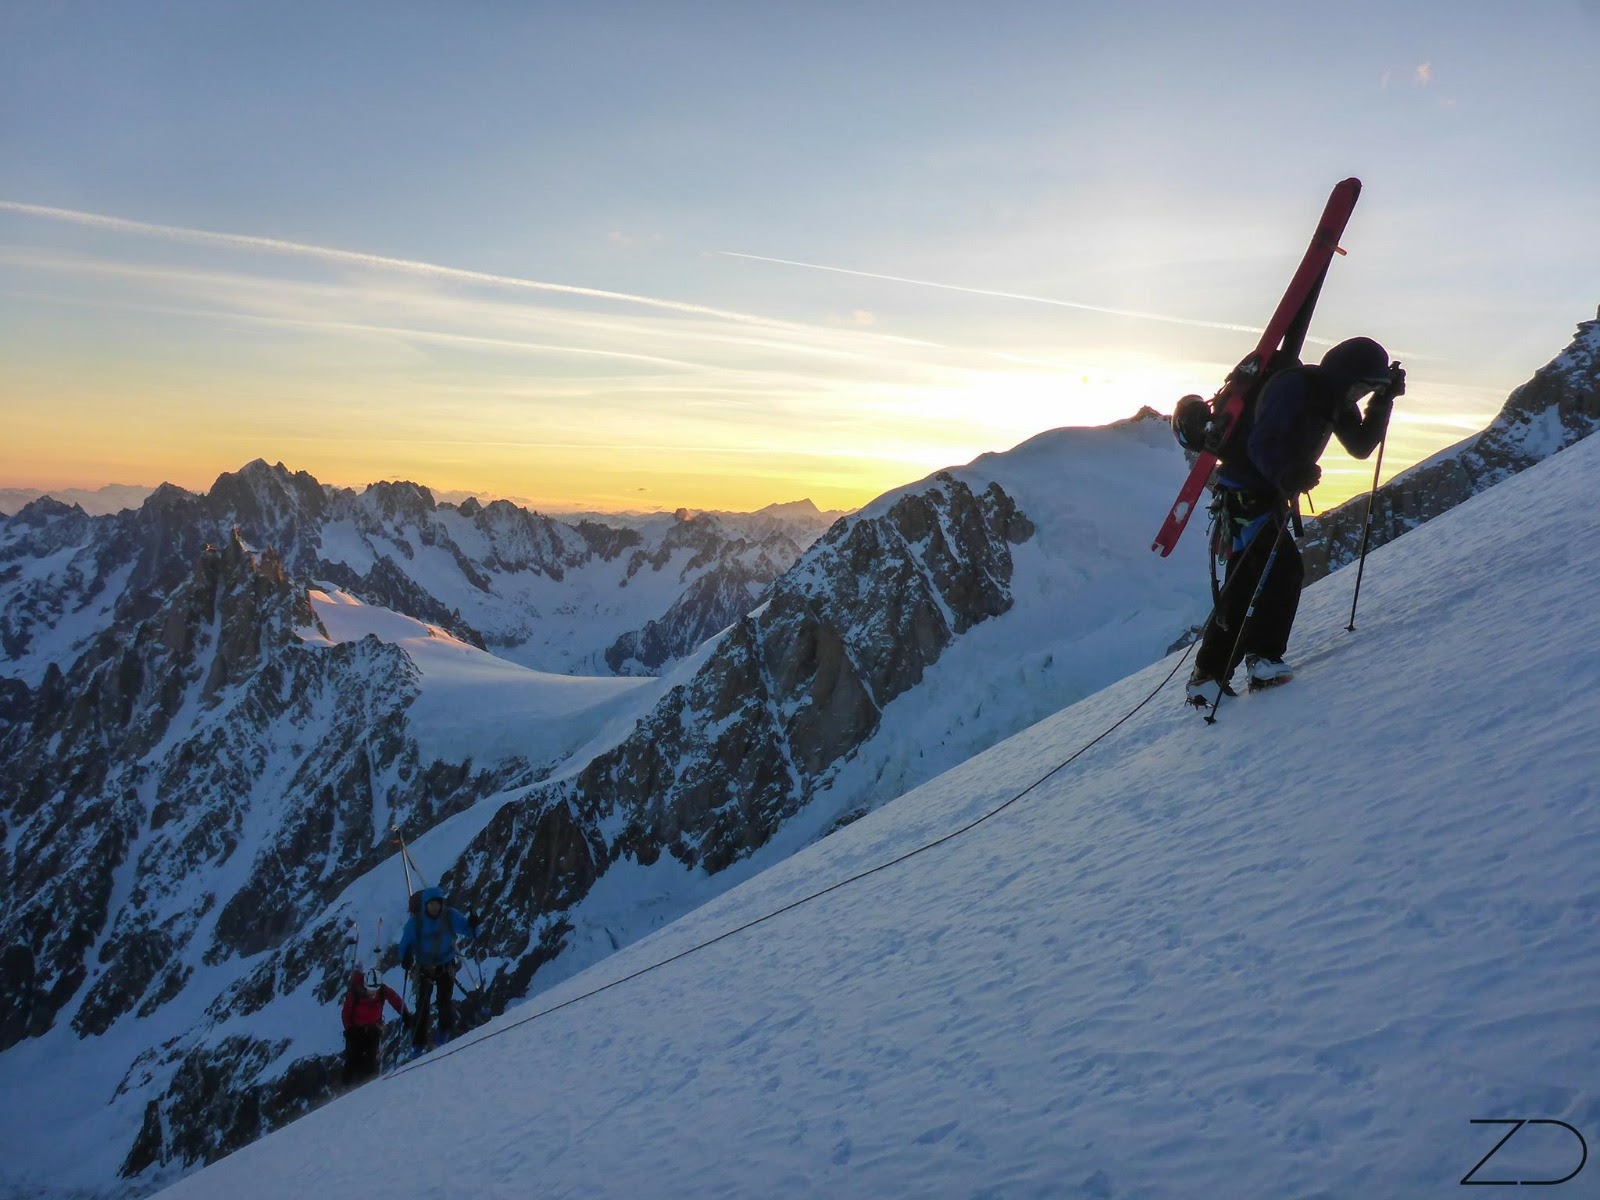 Ski descent of Mont Blanc, Via NW ridge Dome du Gouter